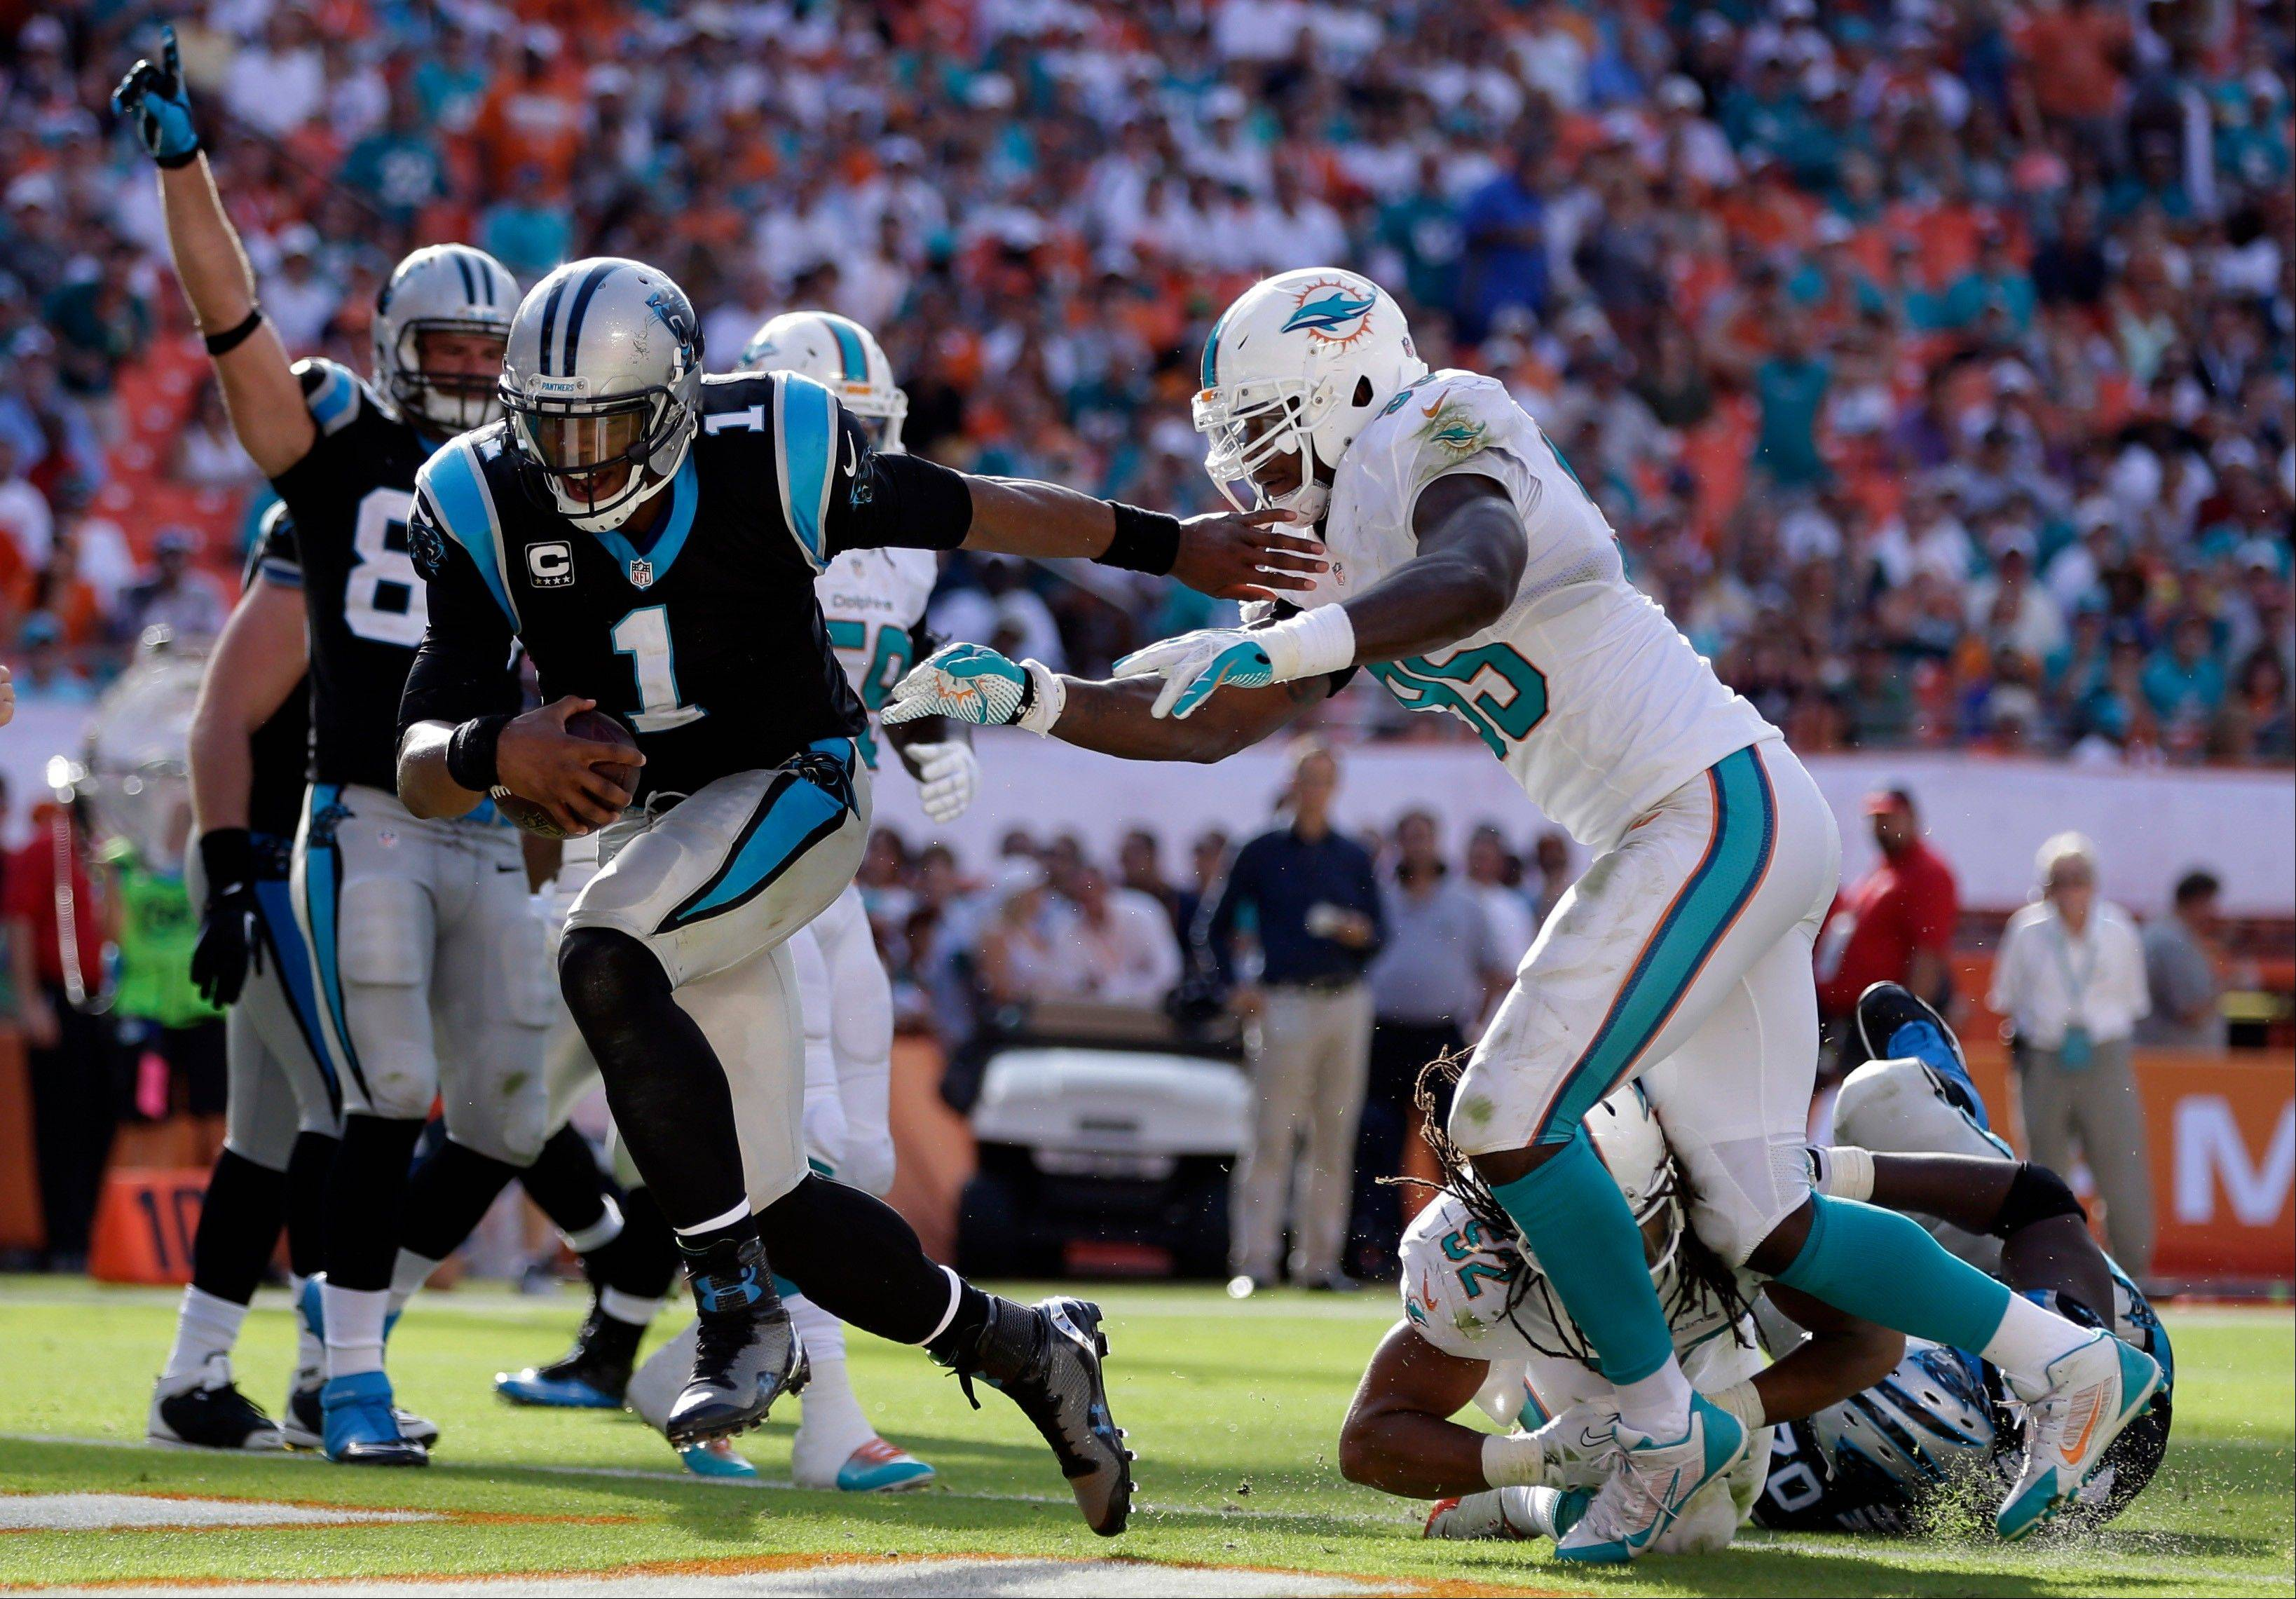 Carolina Panthers quarterback Cam Newton (1) avoids a tackle by Miami Dolphins defensive end Dion Jordan (95) to score a touchdown during the second half of an NFL football game on Sunday, Nov. 24, 2013, in Miami Gardens, Fla.